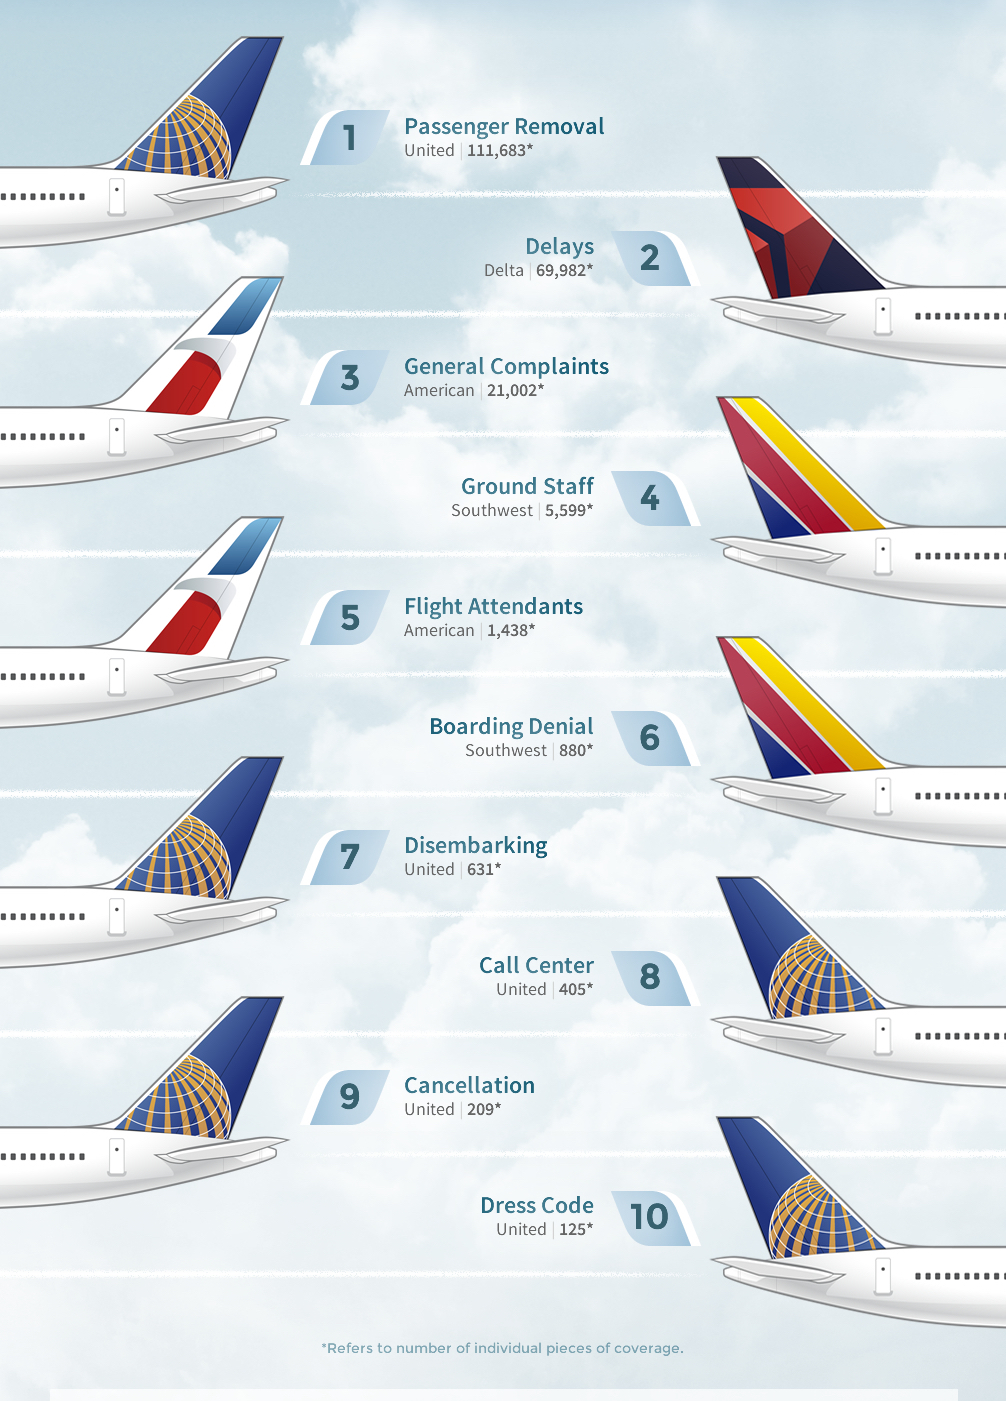 Top Complaints Ranked by Airline